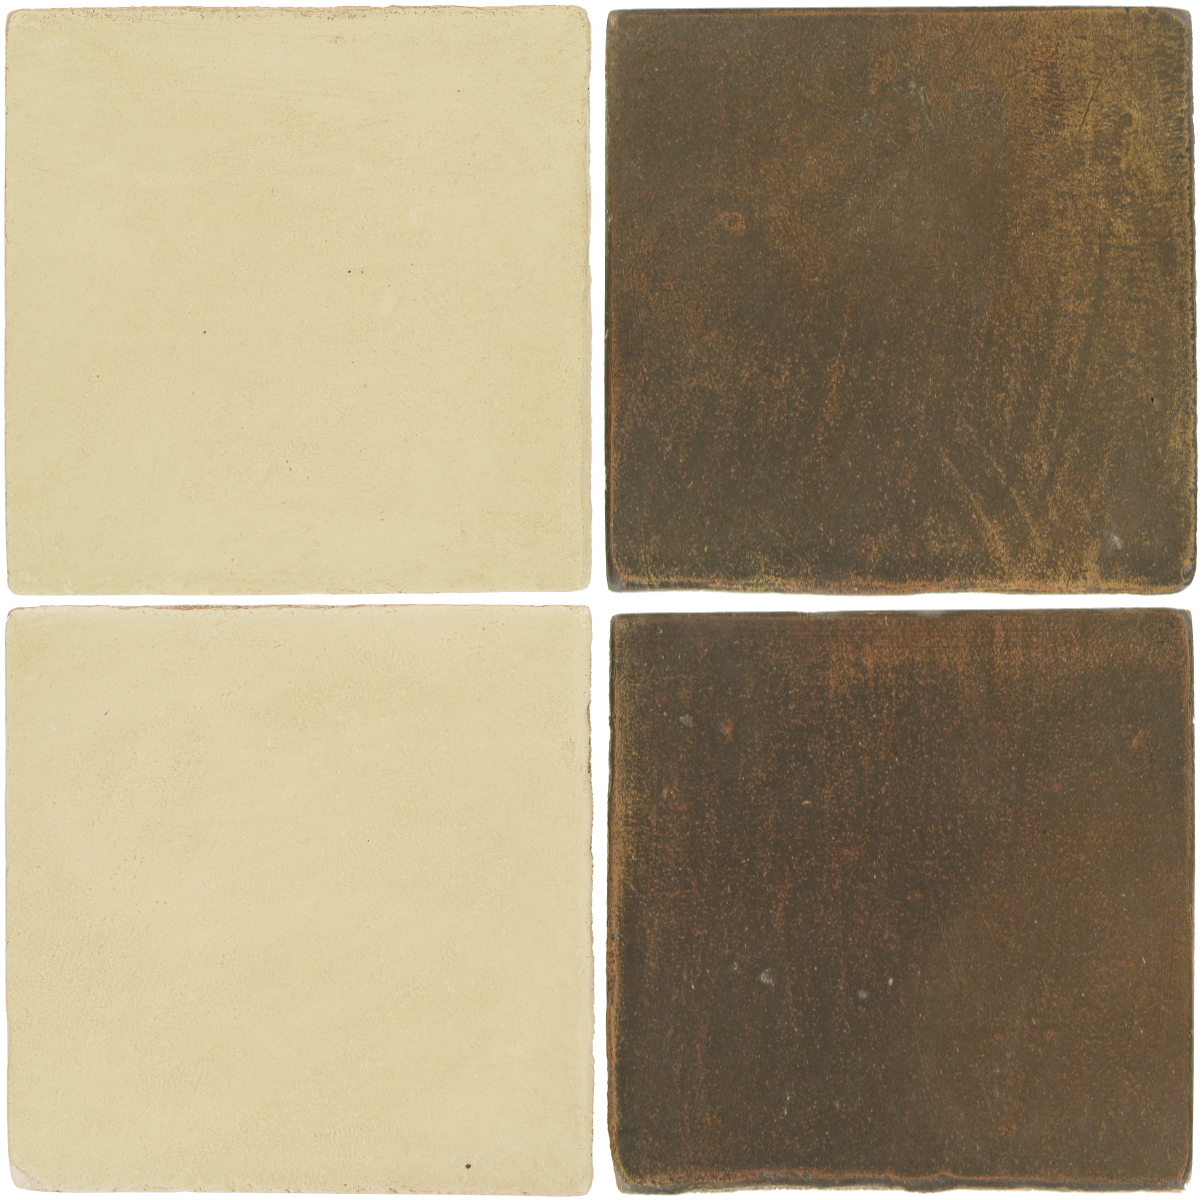 Pedralbes Antique Terracotta  2 Color Combinations  OHS-PGPW Pergamino White + OHS-PSVN Verona Brown